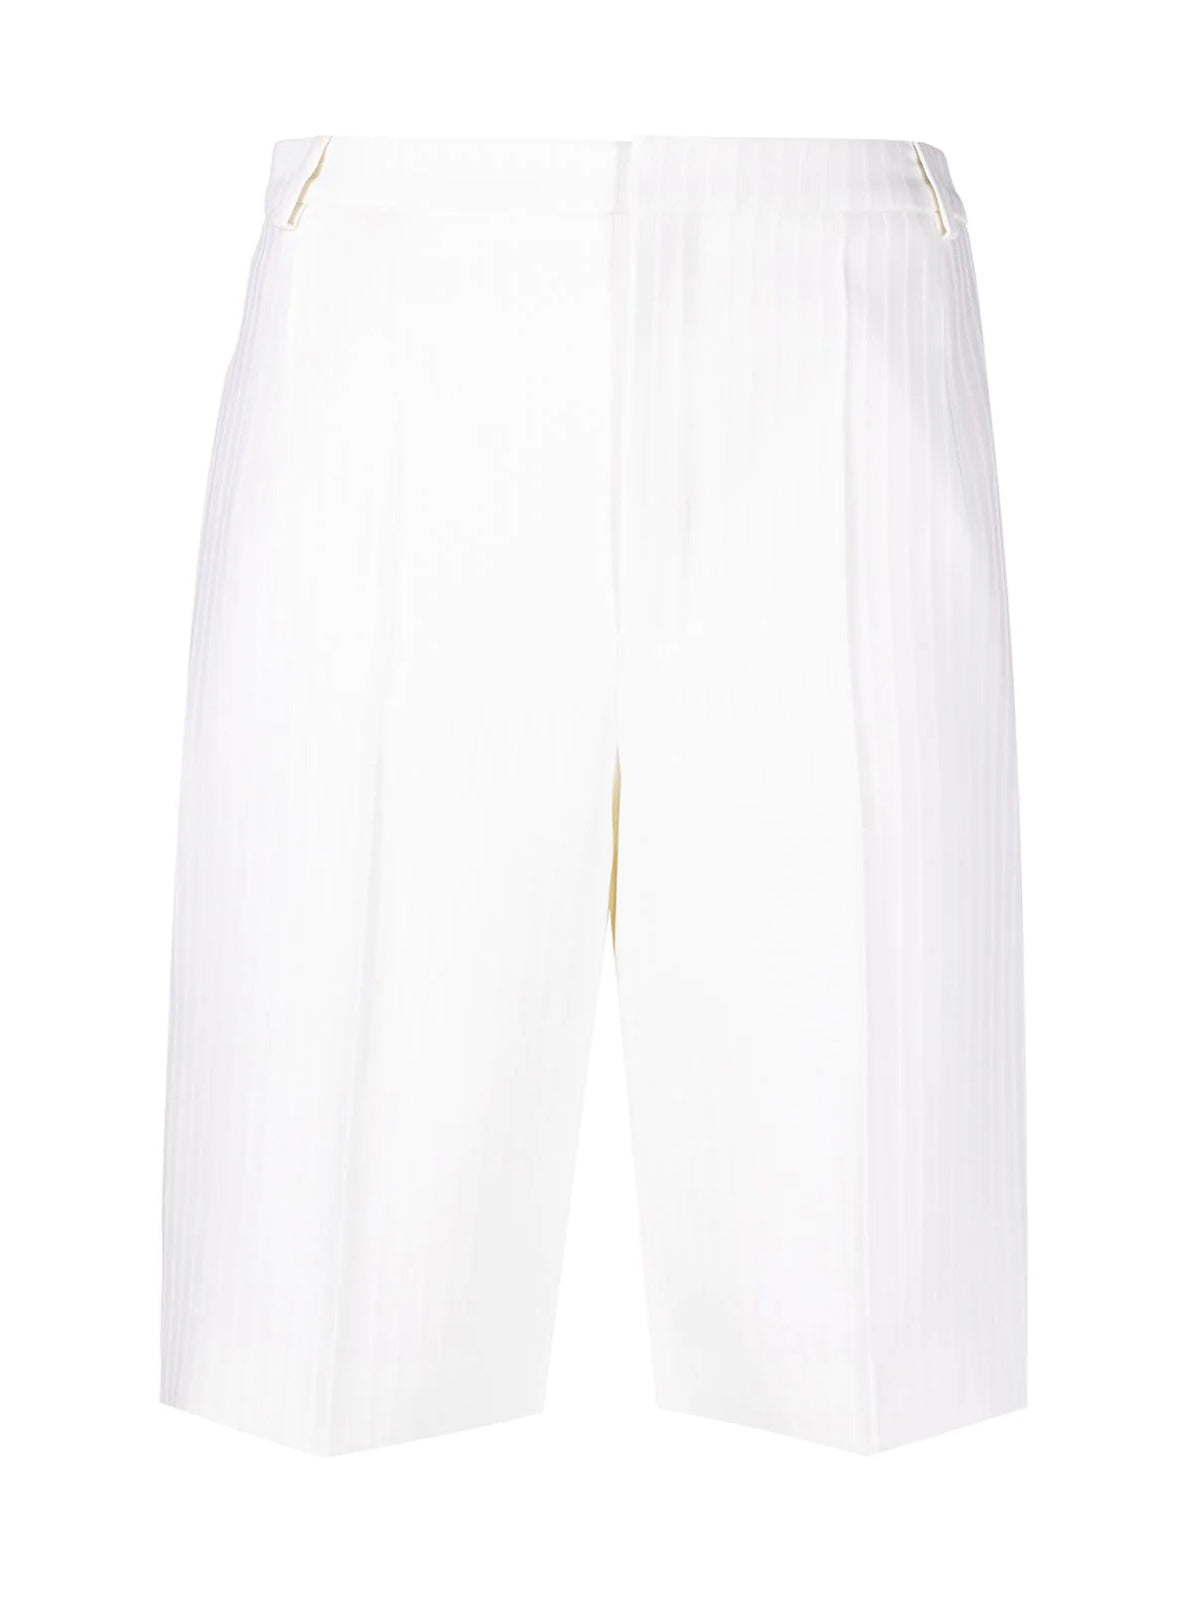 TAILORED WOOL BERMUDA SHORTS WITH CHAIN STRIPES